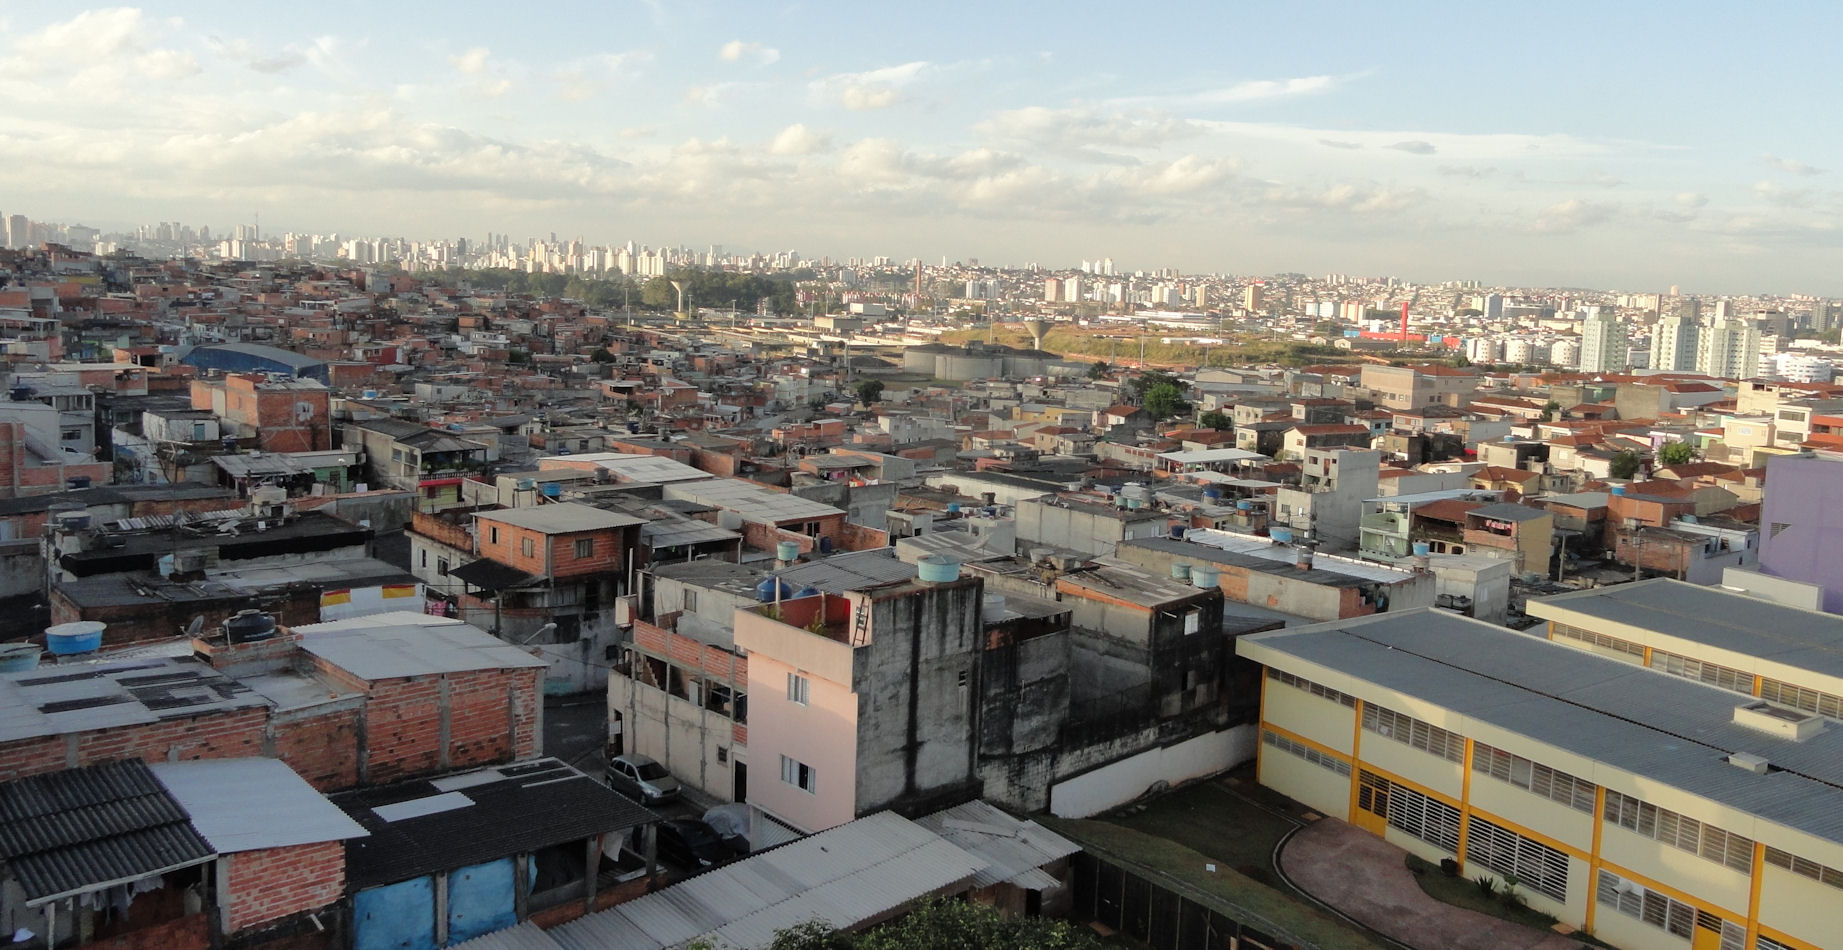 Favela of Heliopolis in Sao Paulo